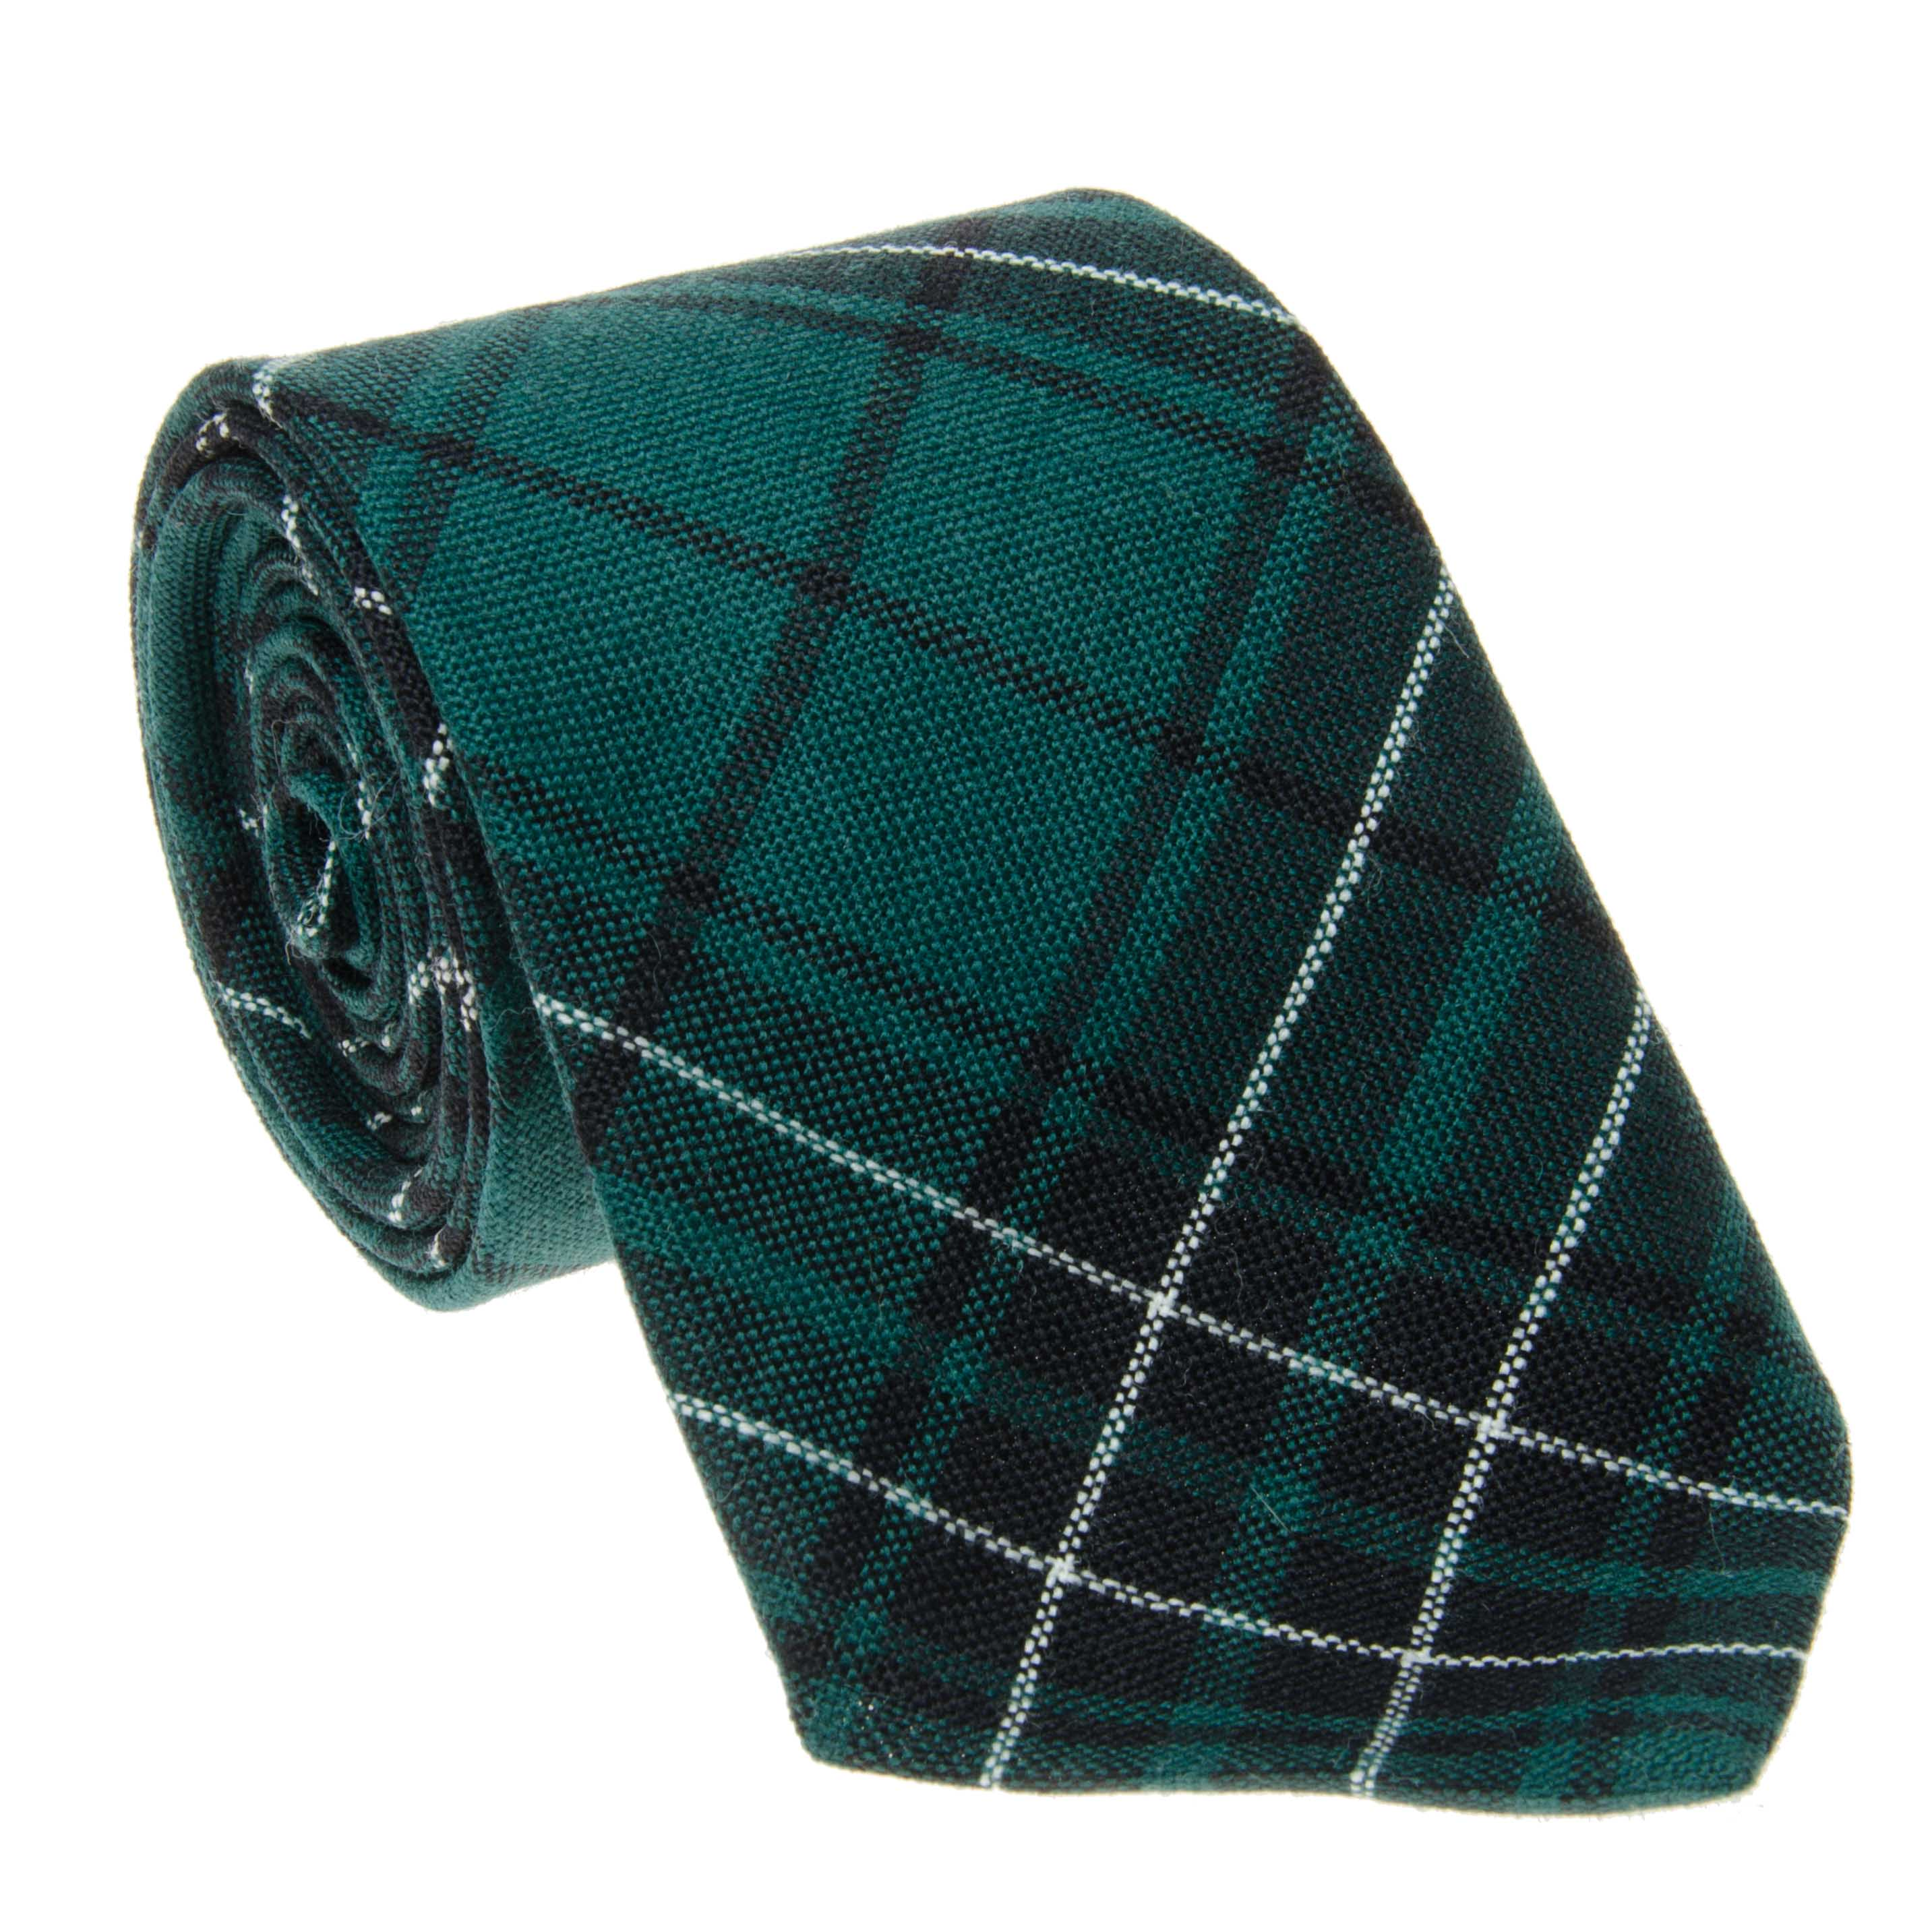 Mens Clan Tie Made in Scotland MacLean Hunting Modern Tartan